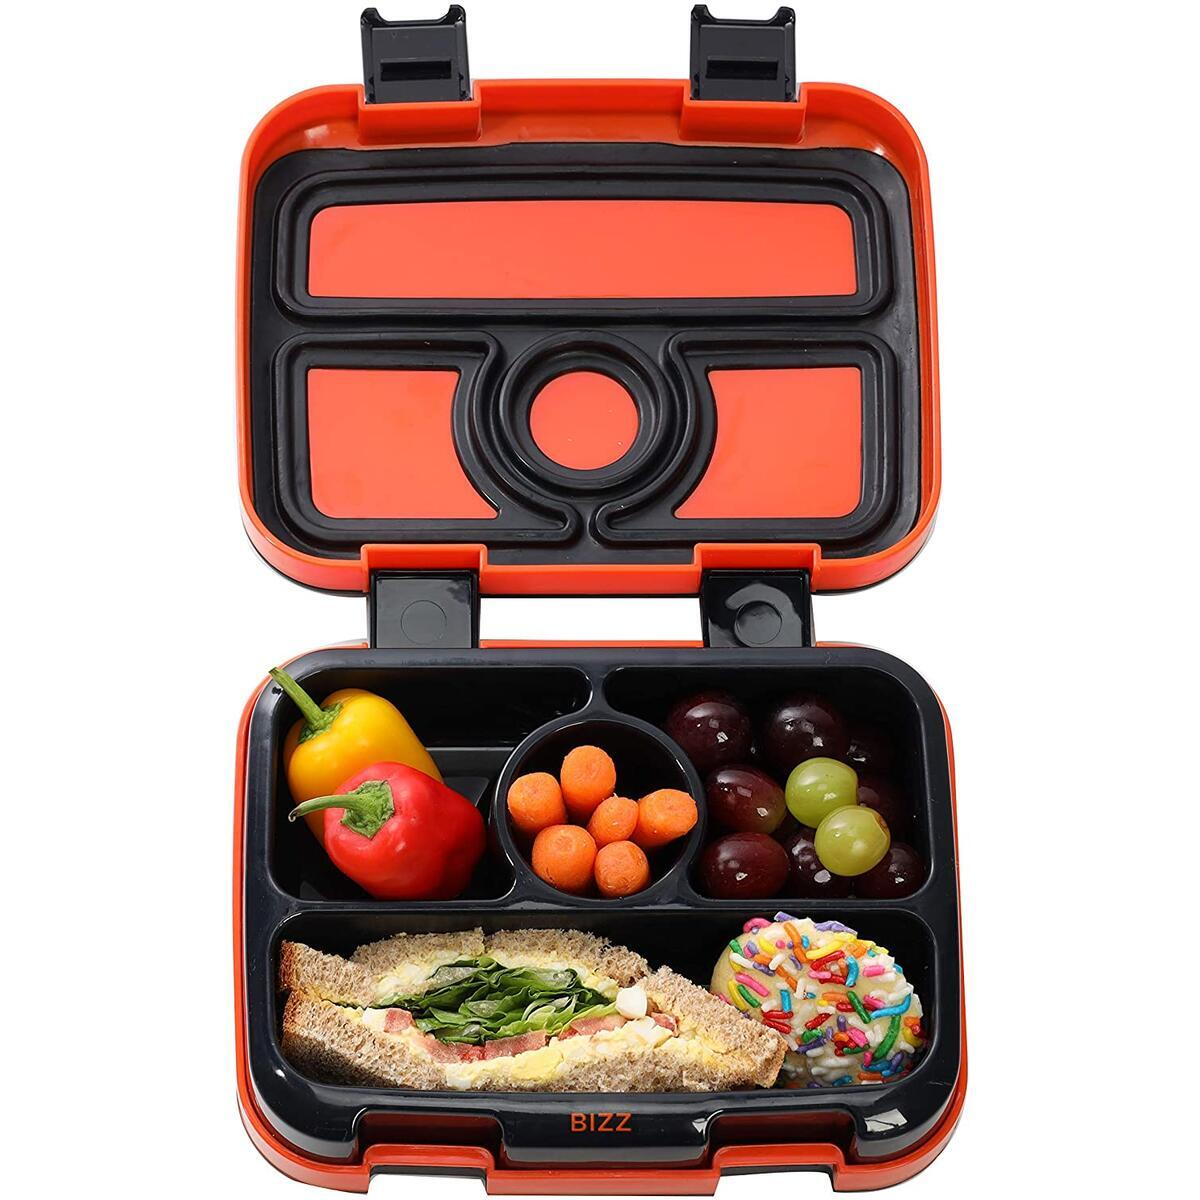 Basketball Design Bento Box - Spoon Fork Included